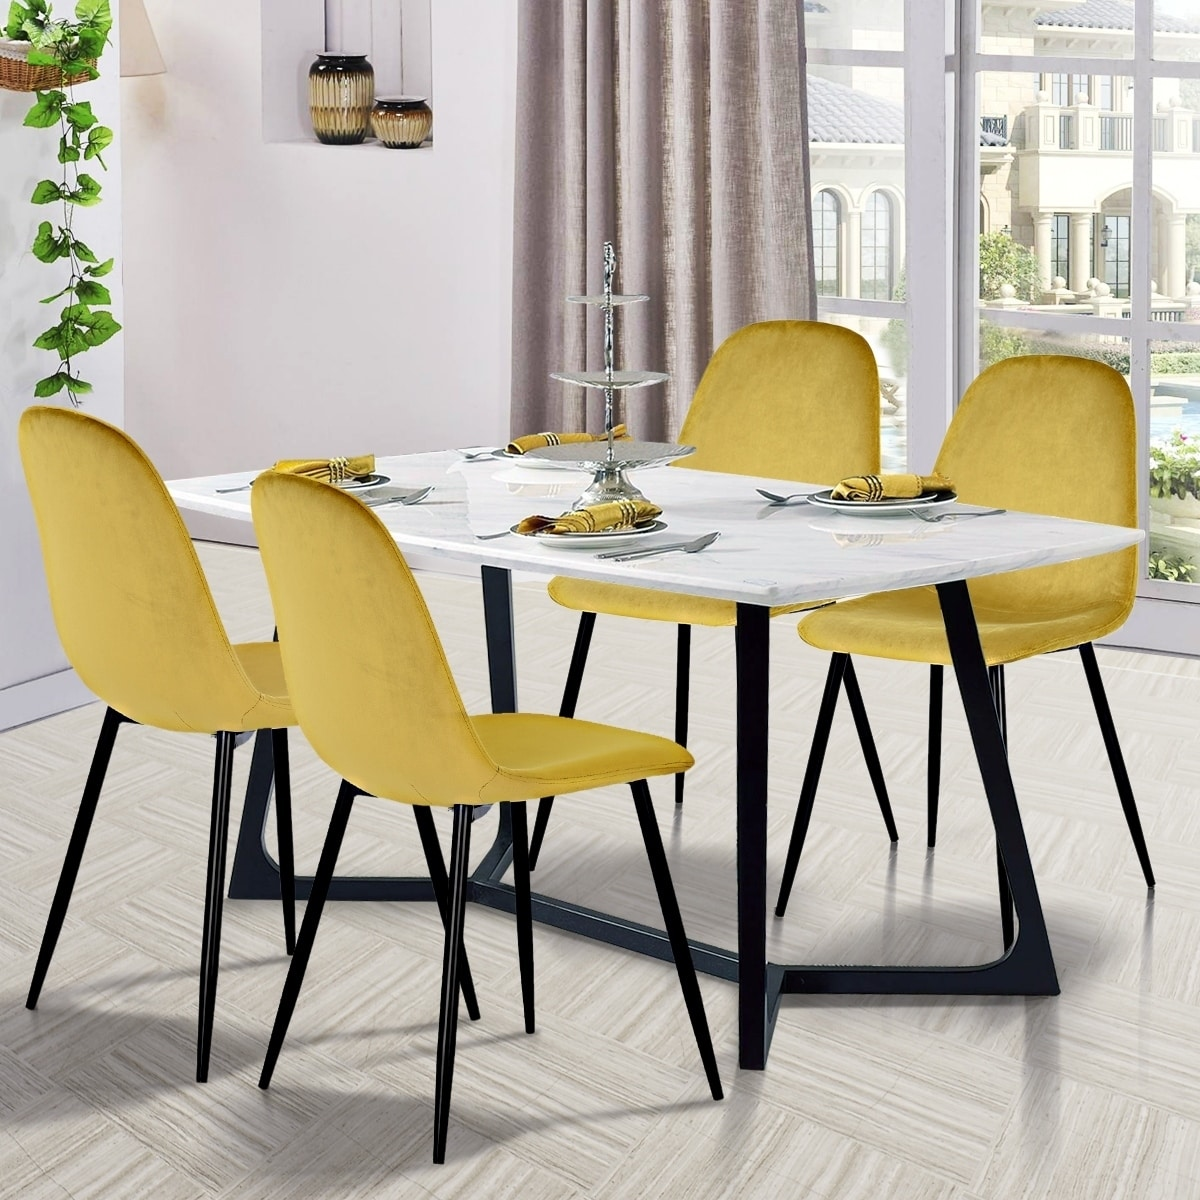 Picture of: Set Of 2 Modern Dining Chairs Yellow Soft Velvet Seat Cushion Covers Metal Legs Isp Paris